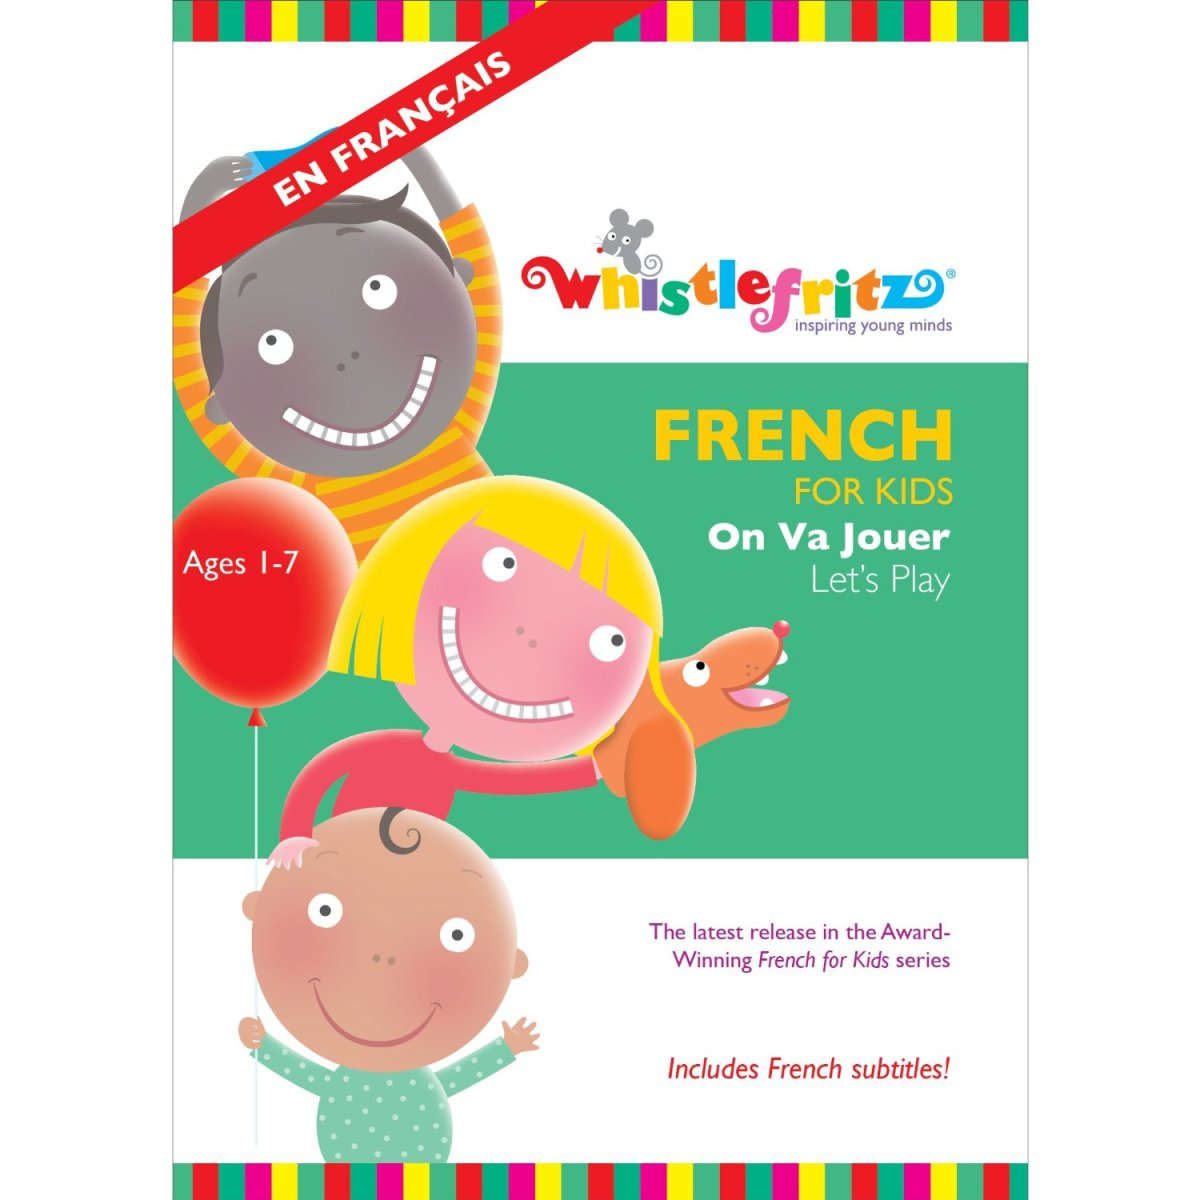 preschoolers-learn-foreign-languages